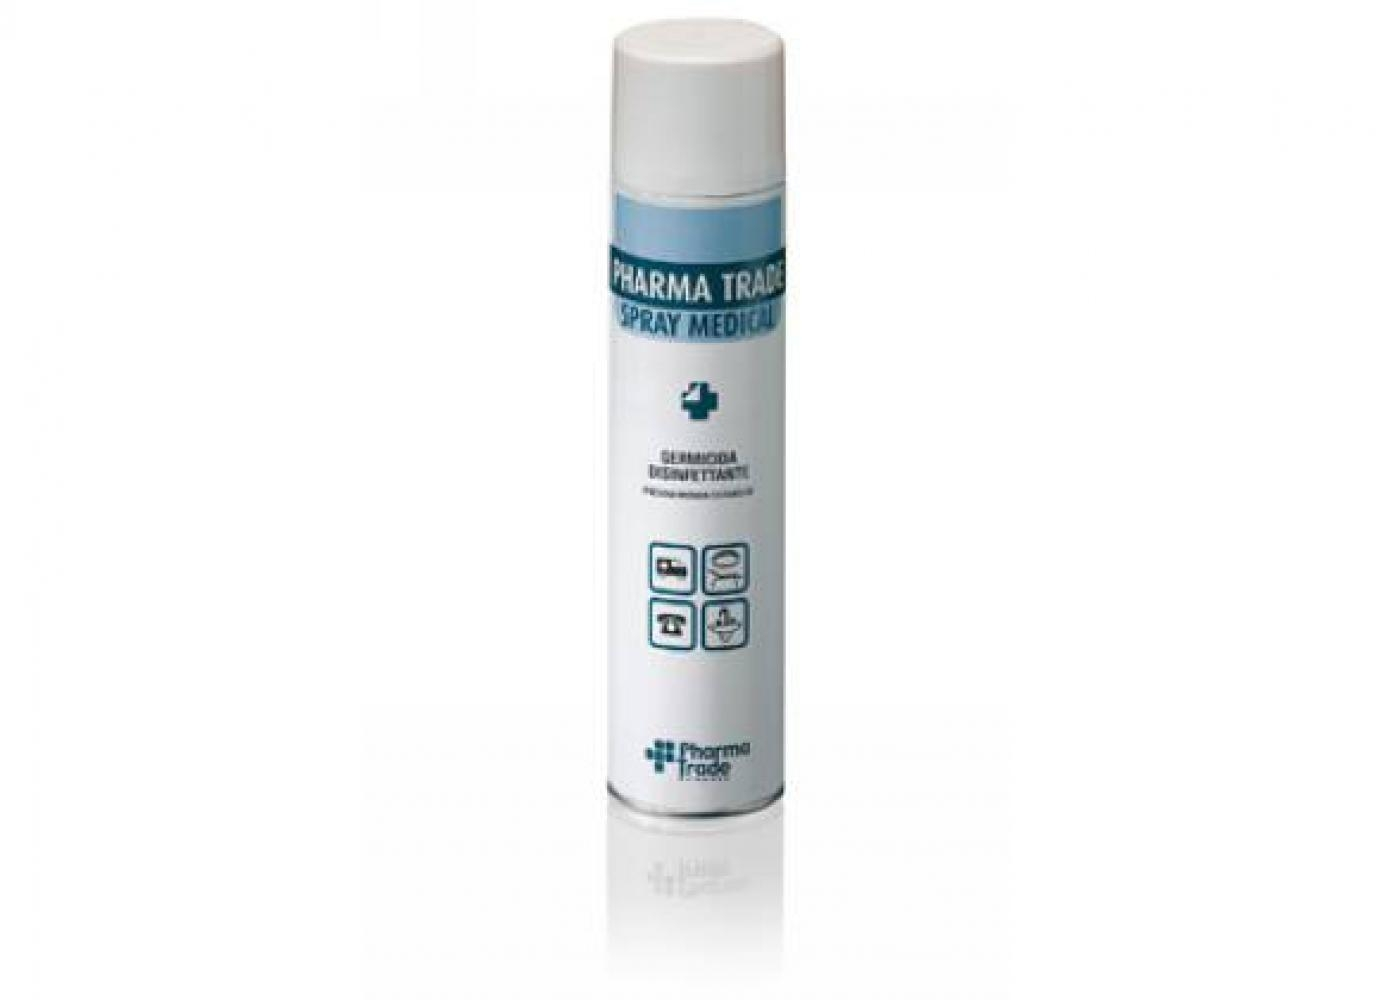 Acquista Spray Medical Bombola Ml 525 17545715 | Glooke.com